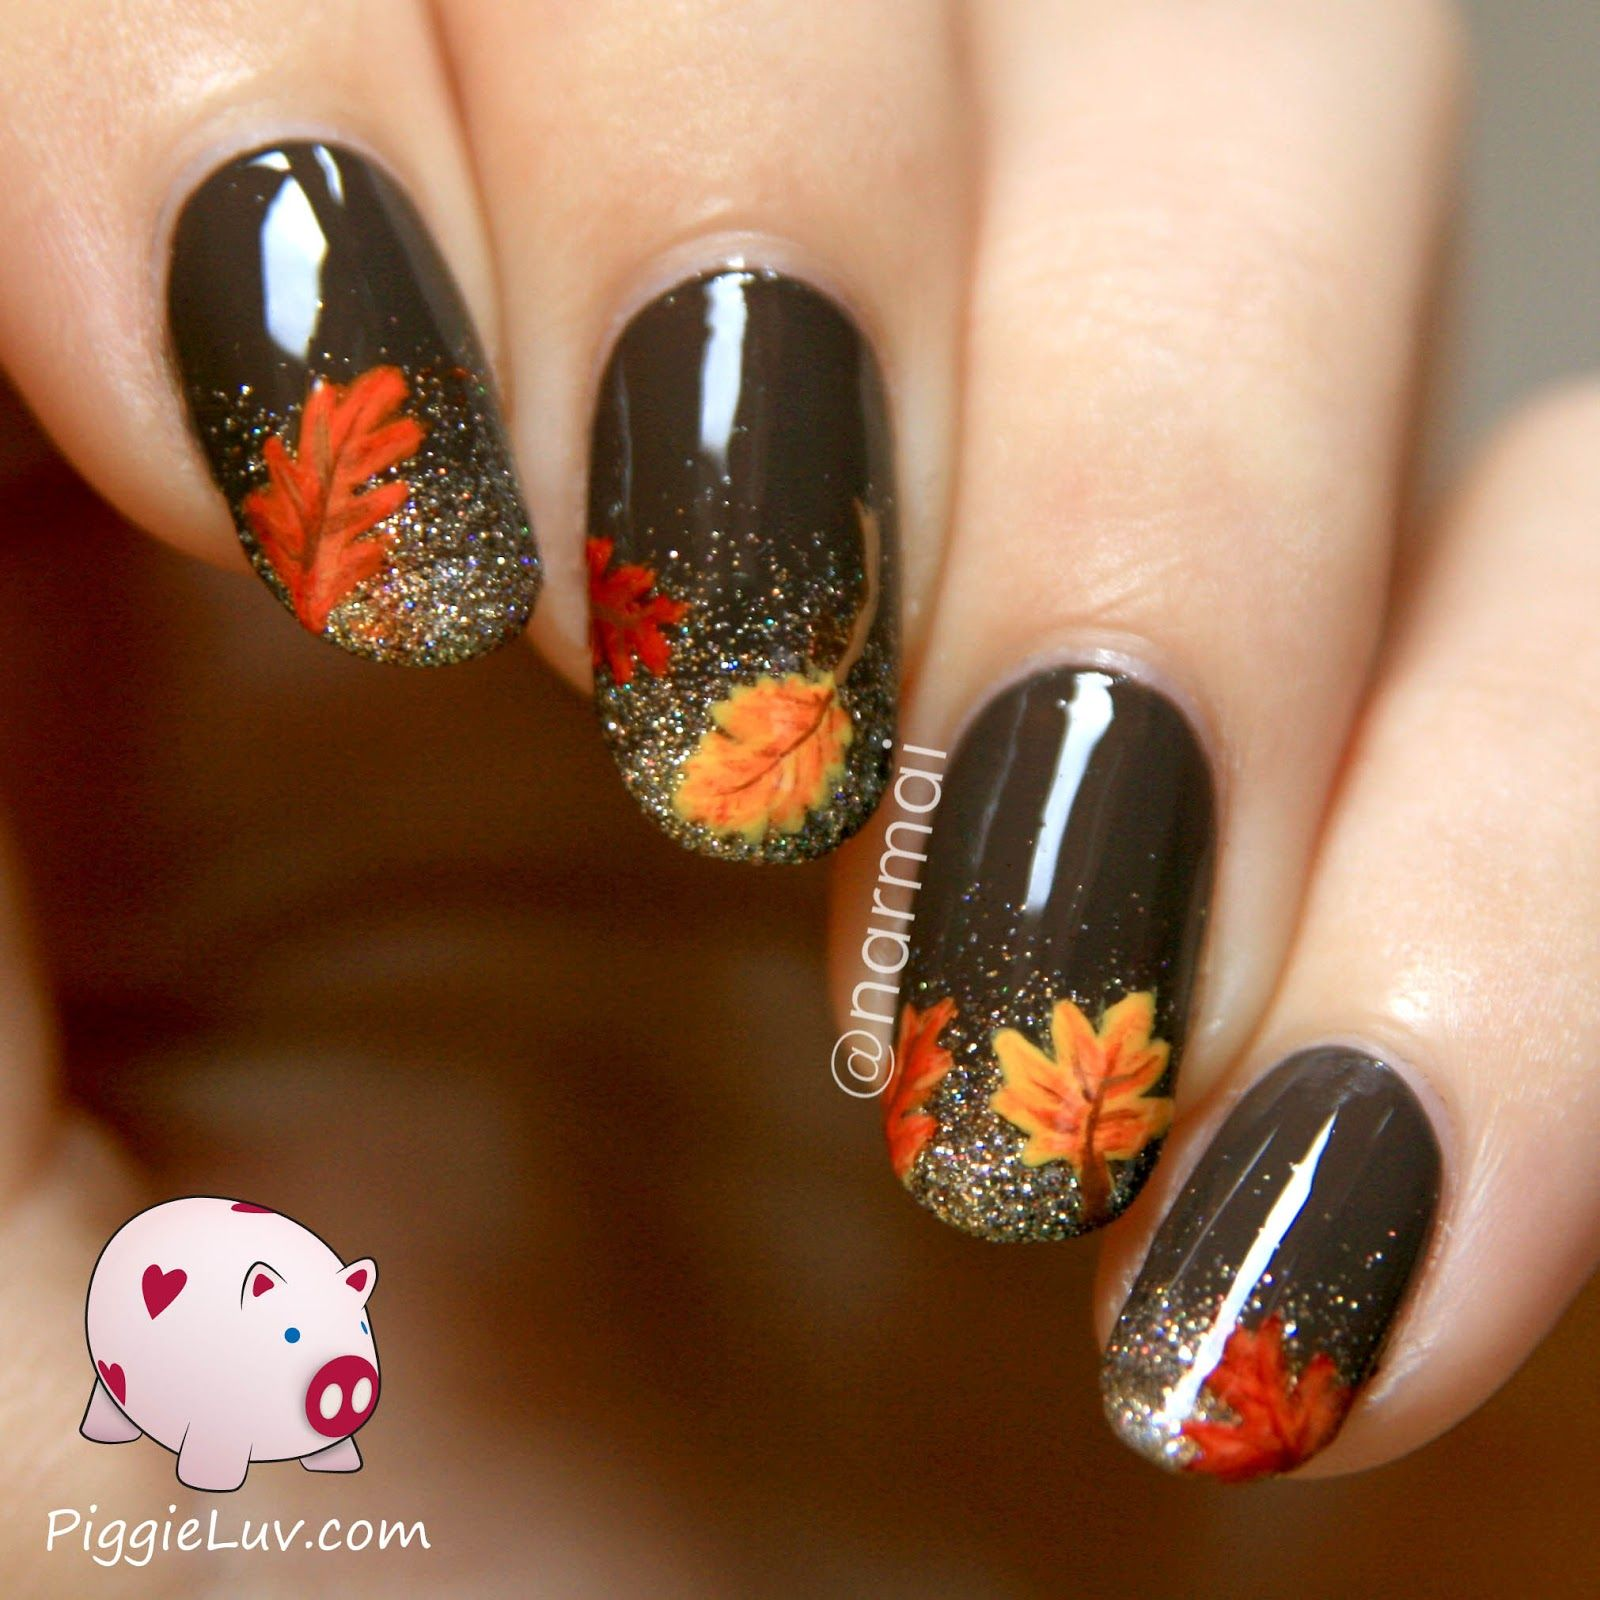 Diy Autumn Gradient Nail Art: Fall Nail Art! Autumn Leaves On Glitter Gradient